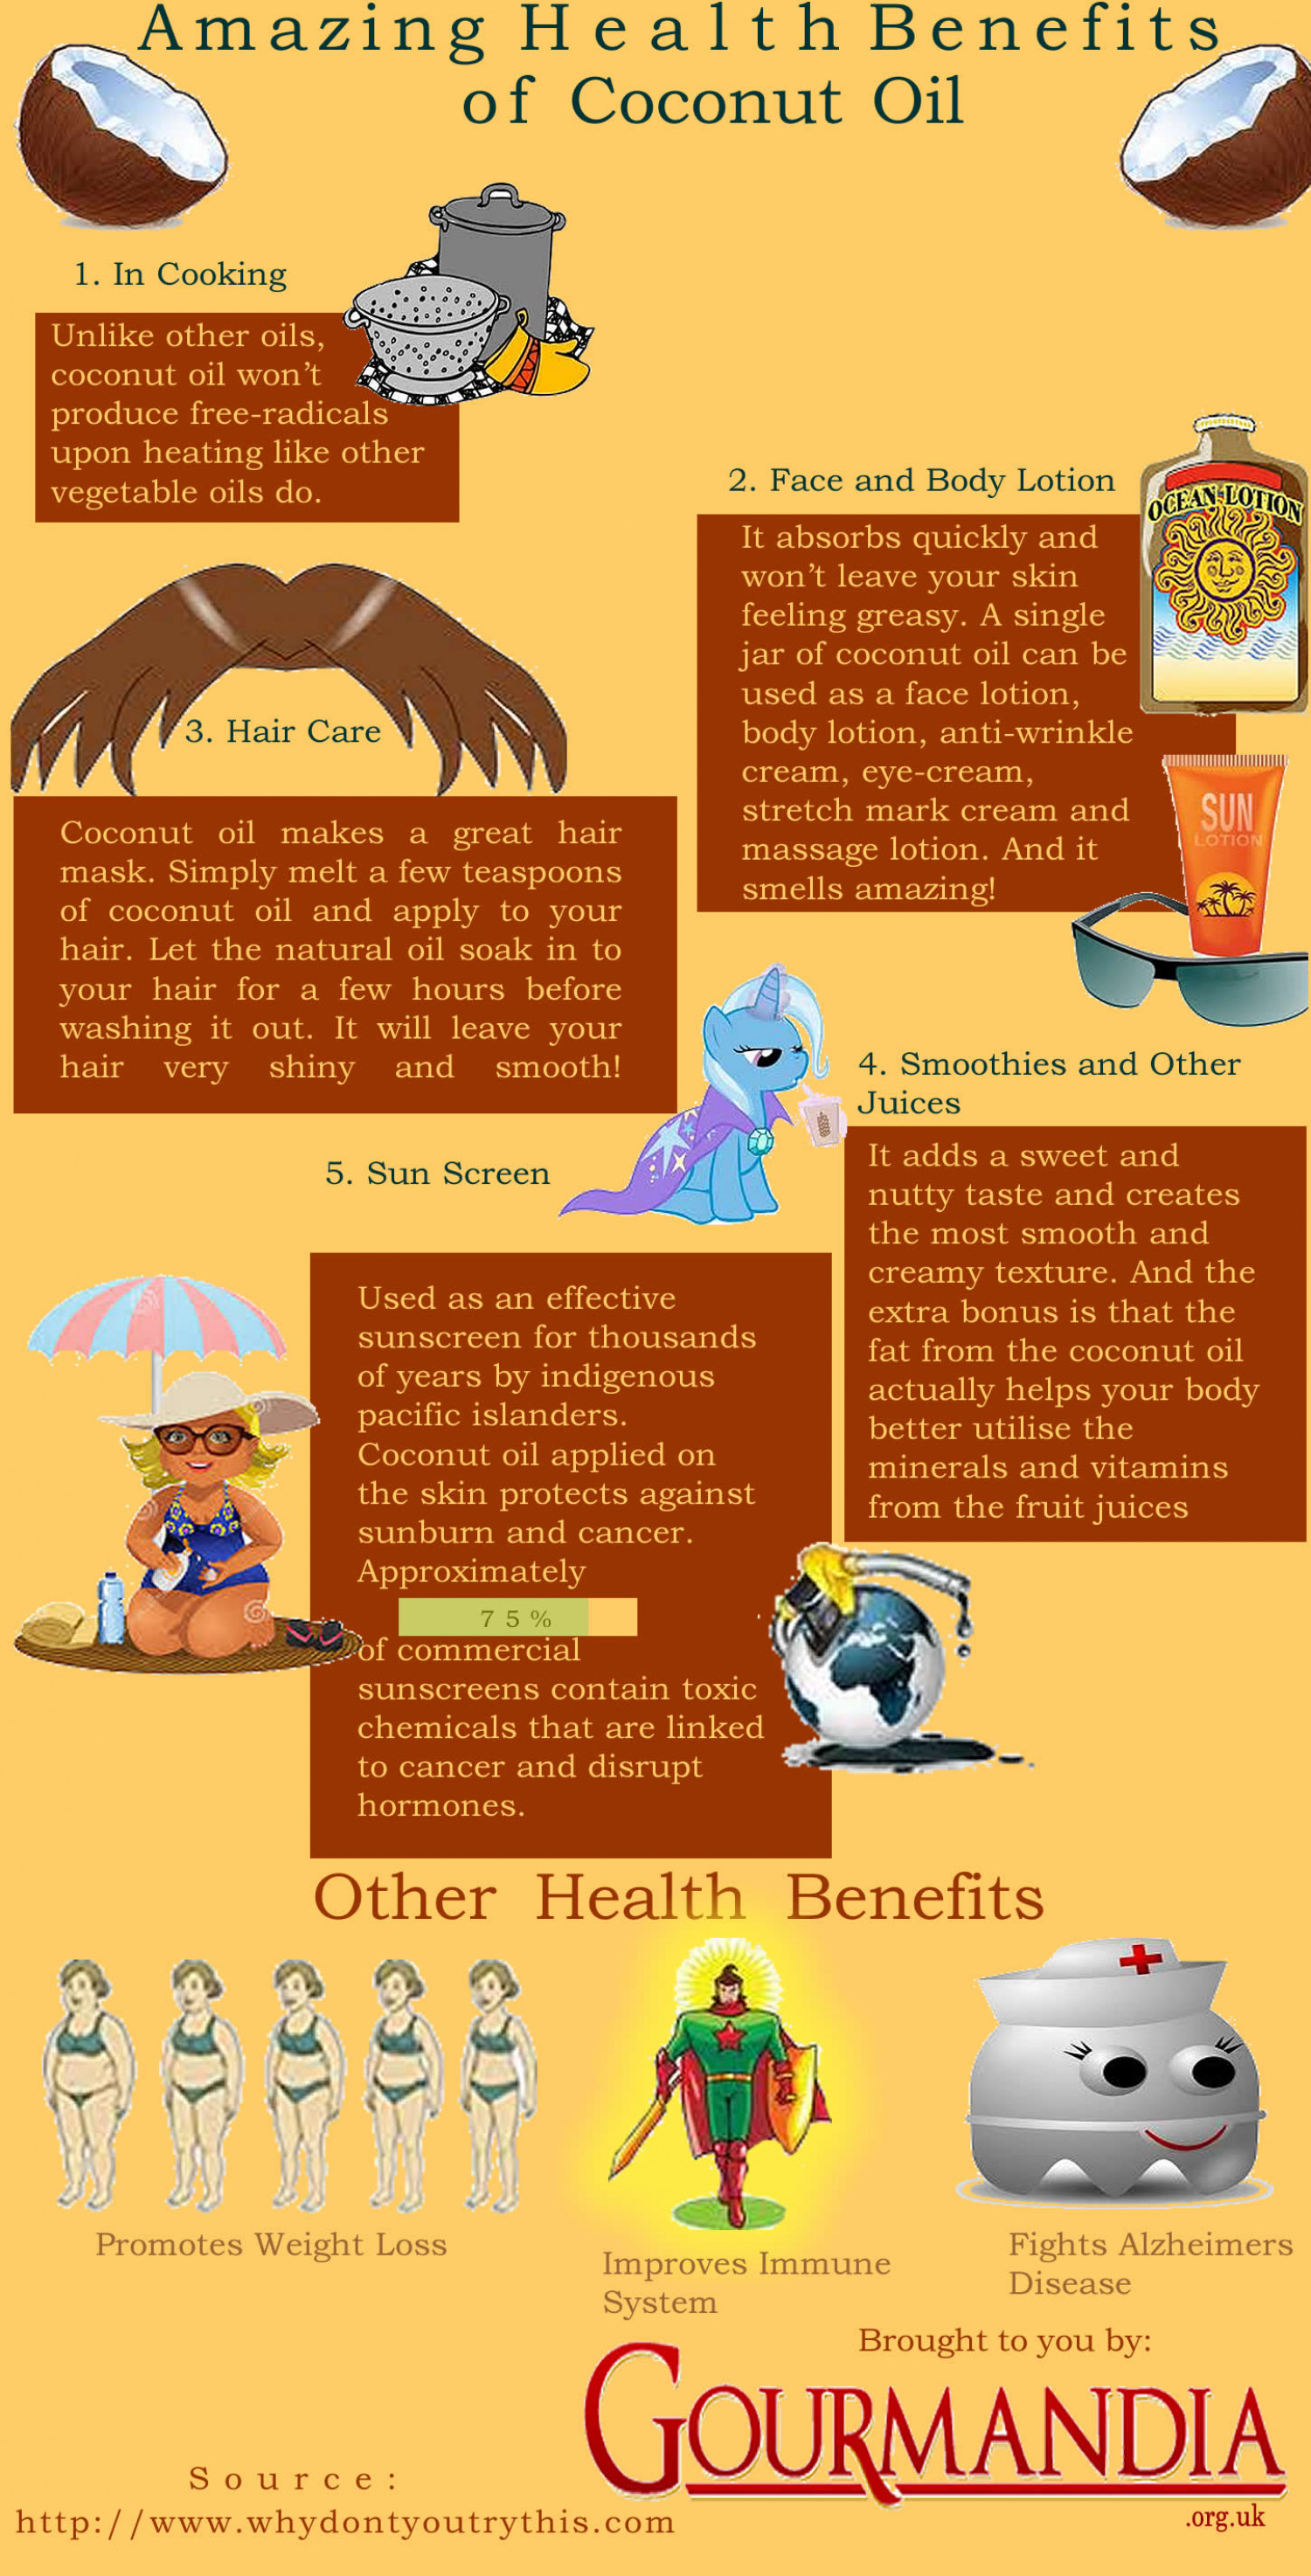 Amazing Health Benefits of Coconut Oil Infographic